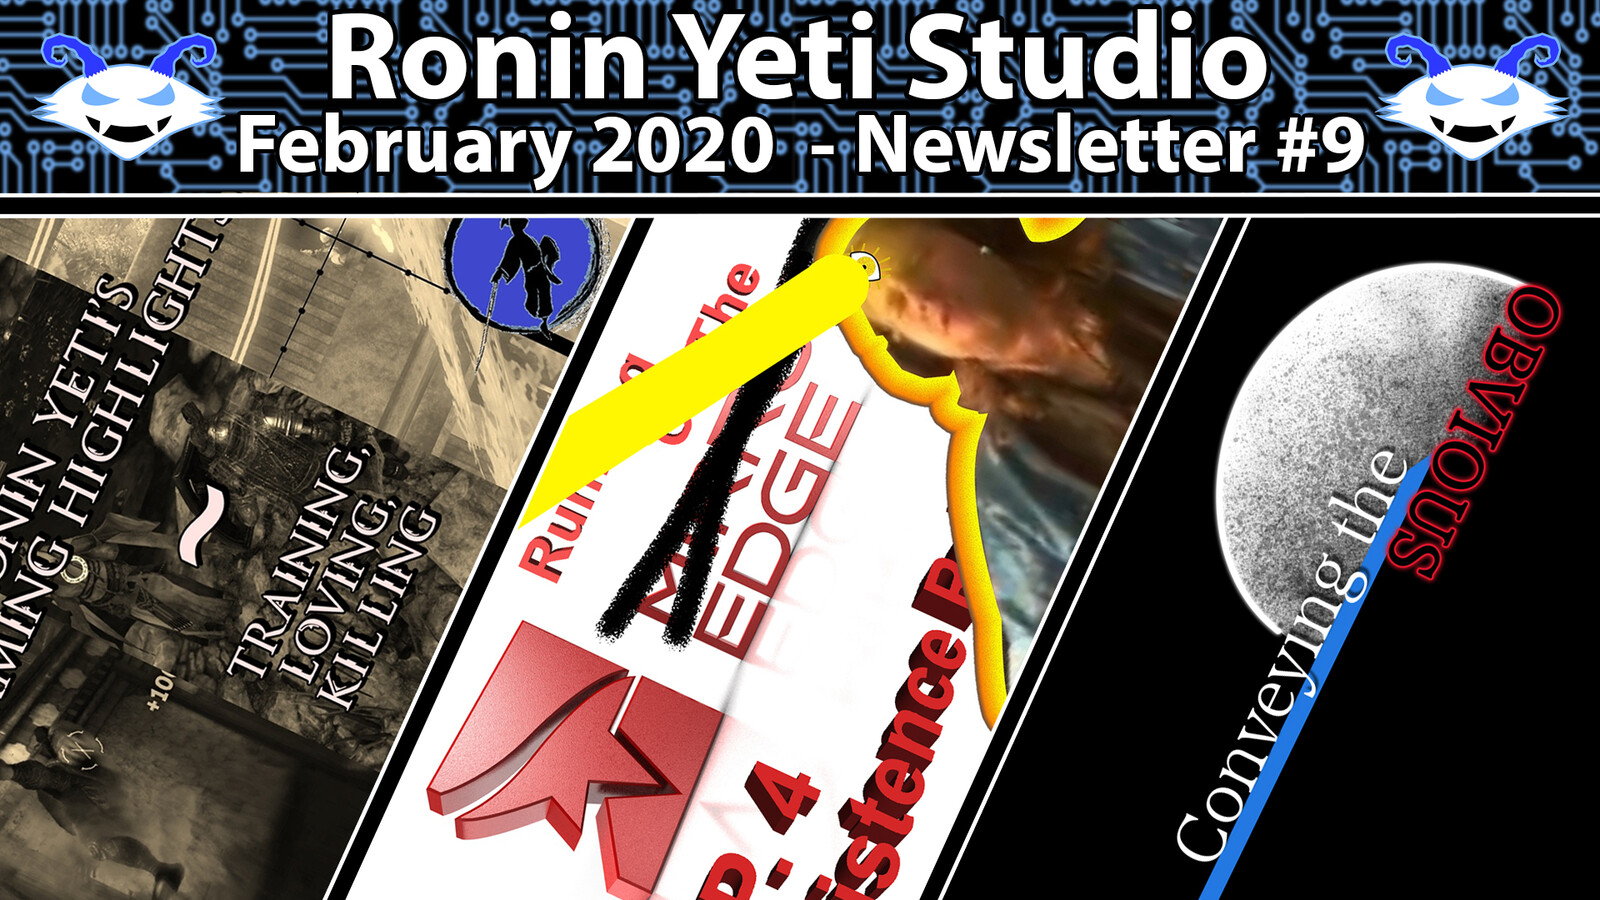 One of the later newsletter thumbnails